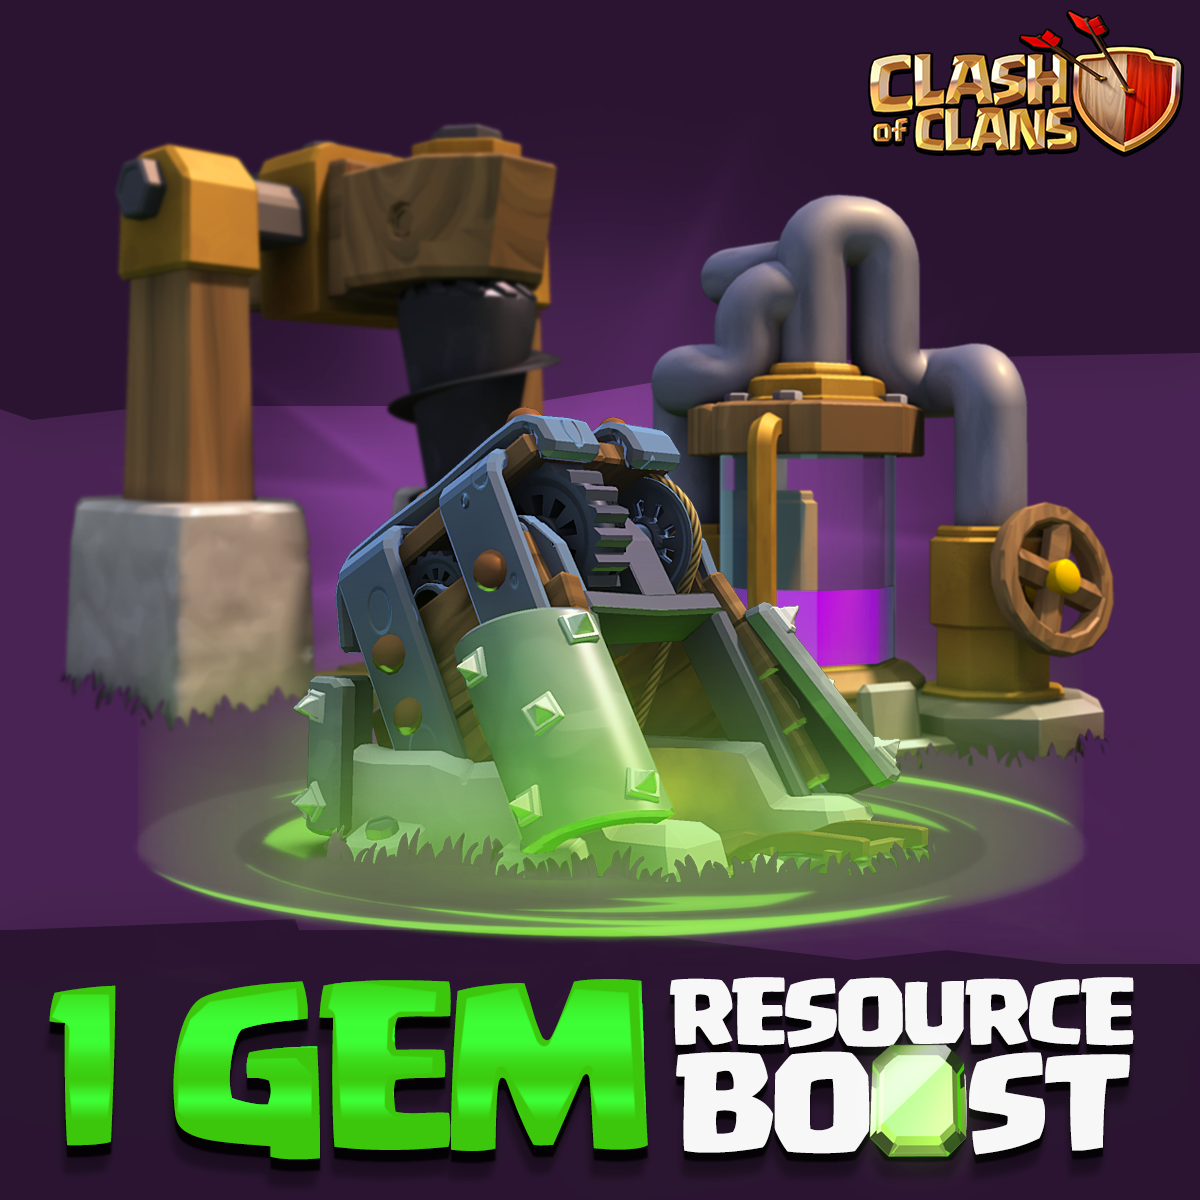 1 gem resource boost